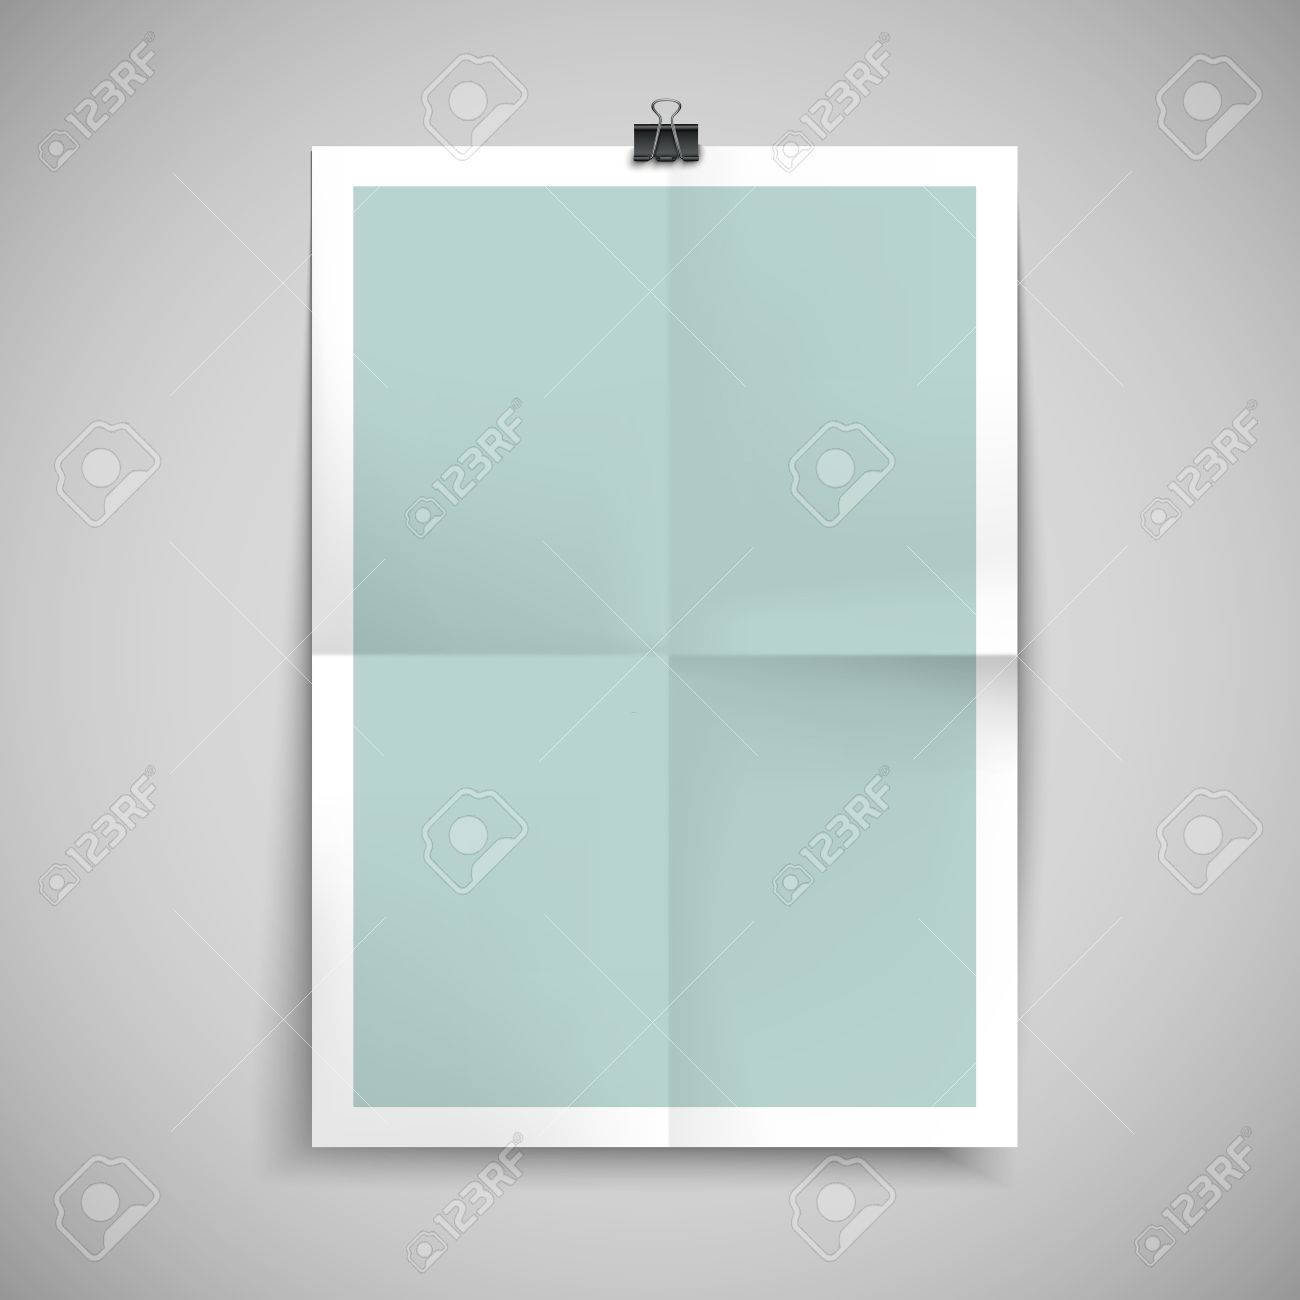 Paper Blank Brochure Template Hanging Over Wall Royalty Free